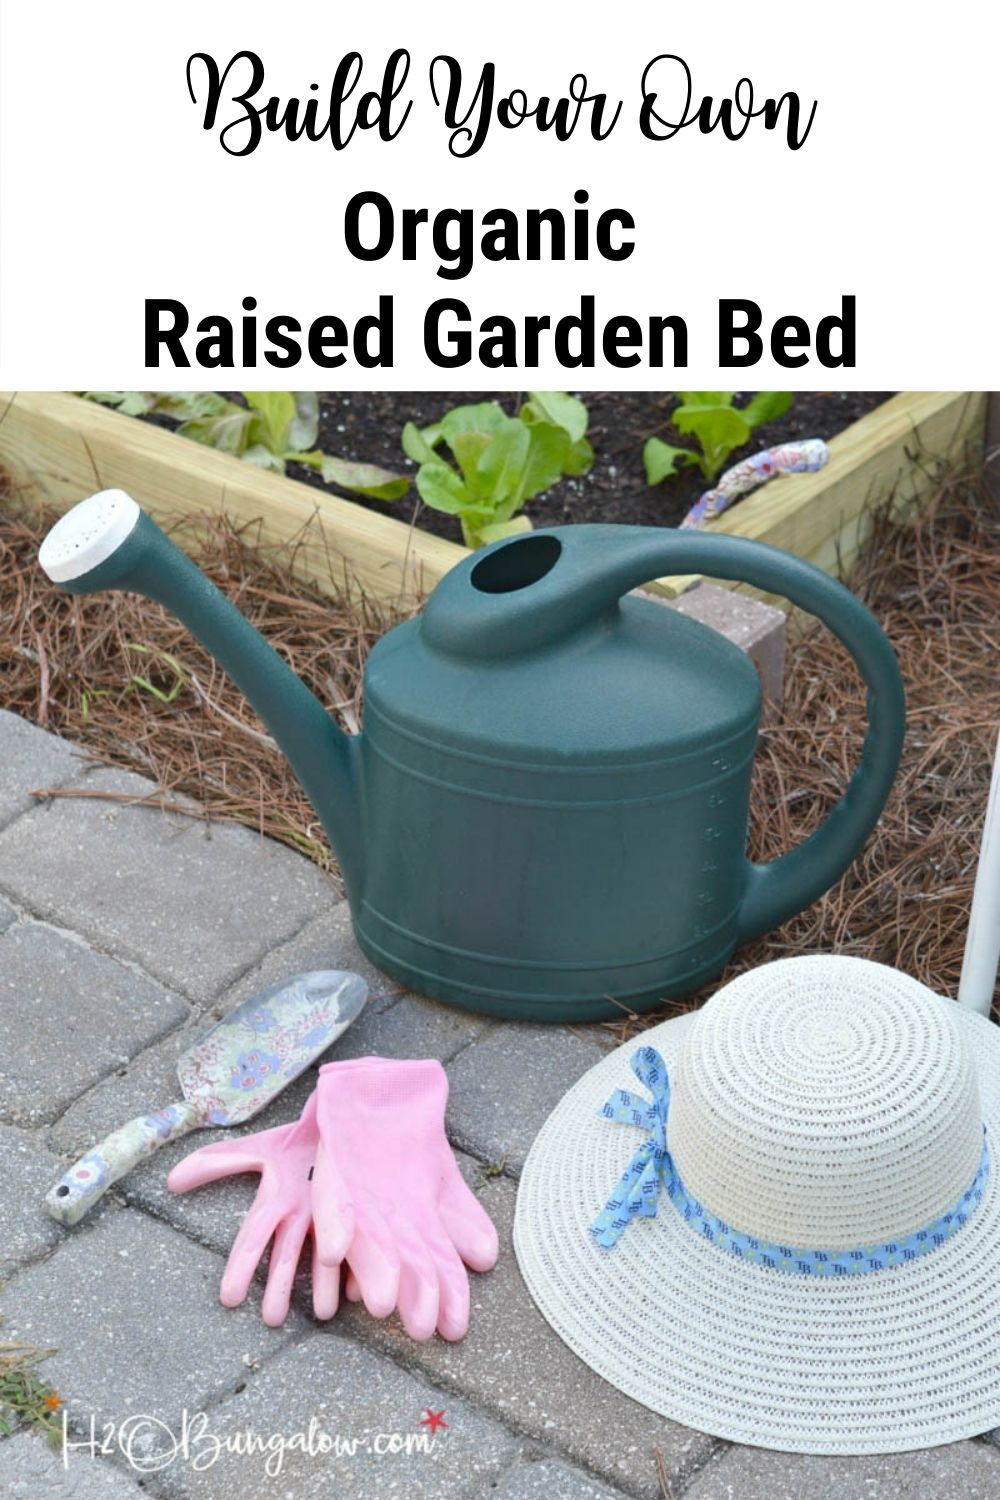 watering can, hat, pink gardening gloves and spade in front of raised garden bed